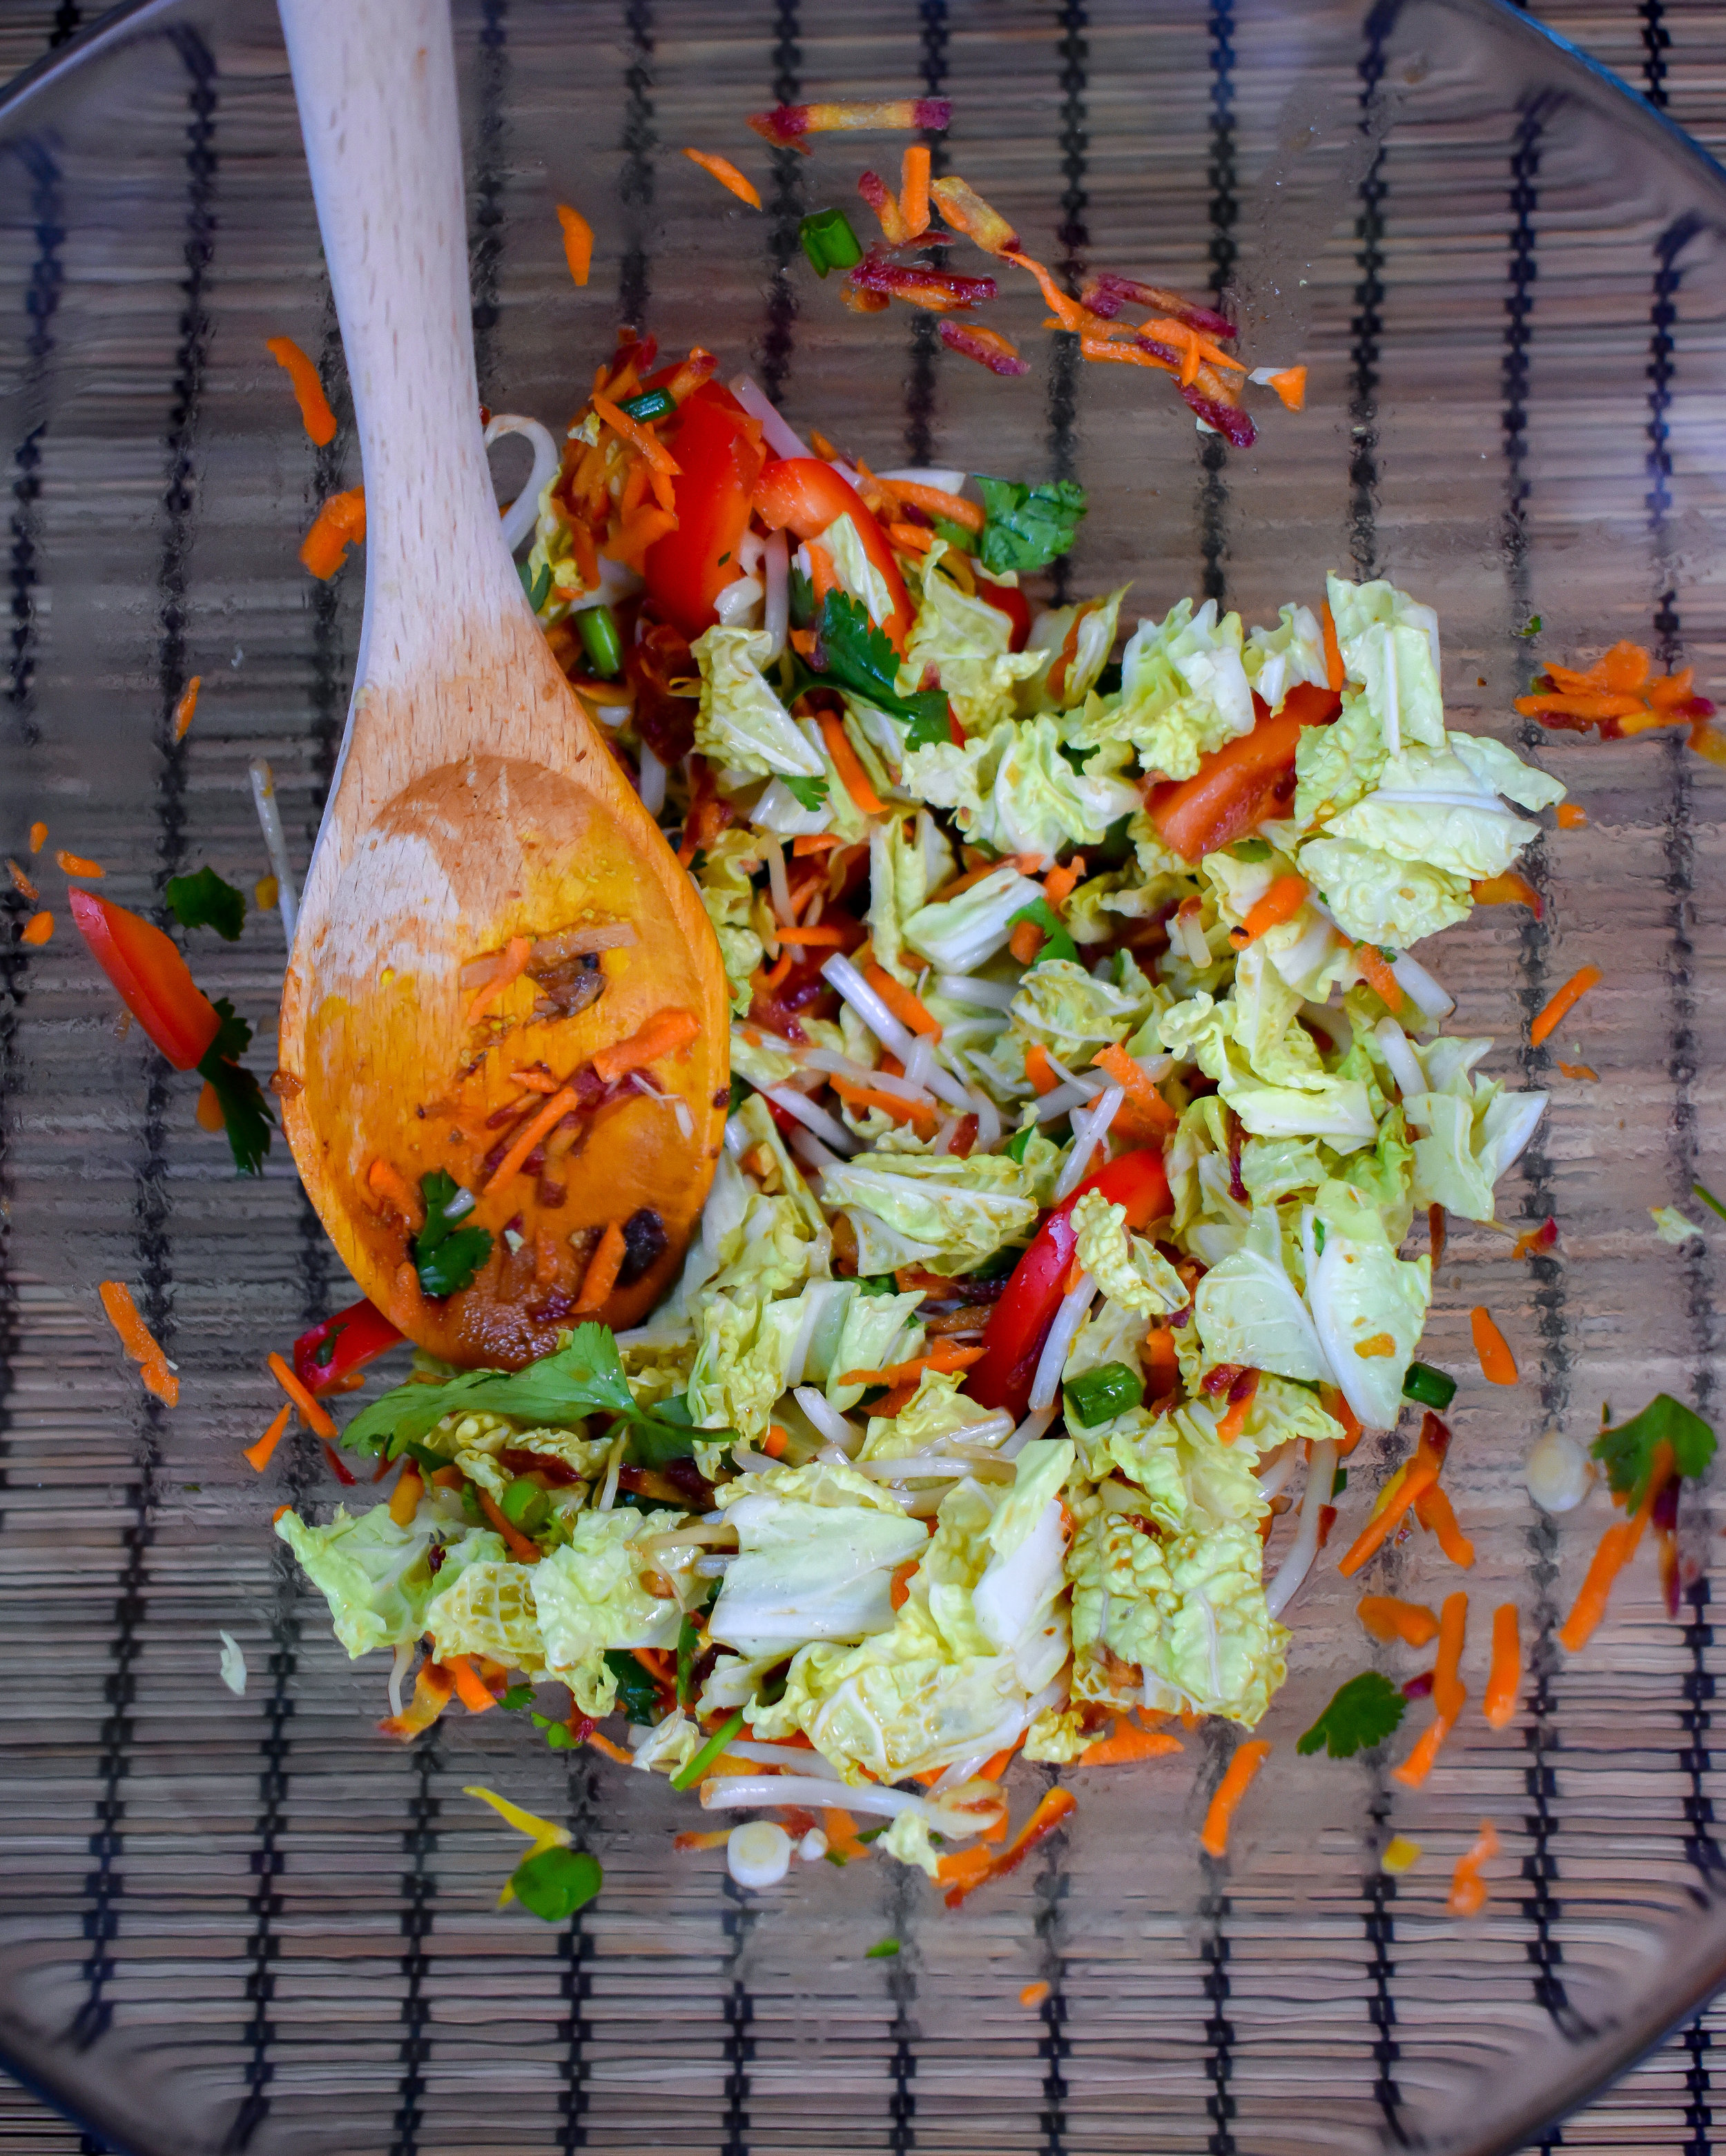 7. While the potatoes/tofu cook or if you are done, mix together the salad. Set aside.